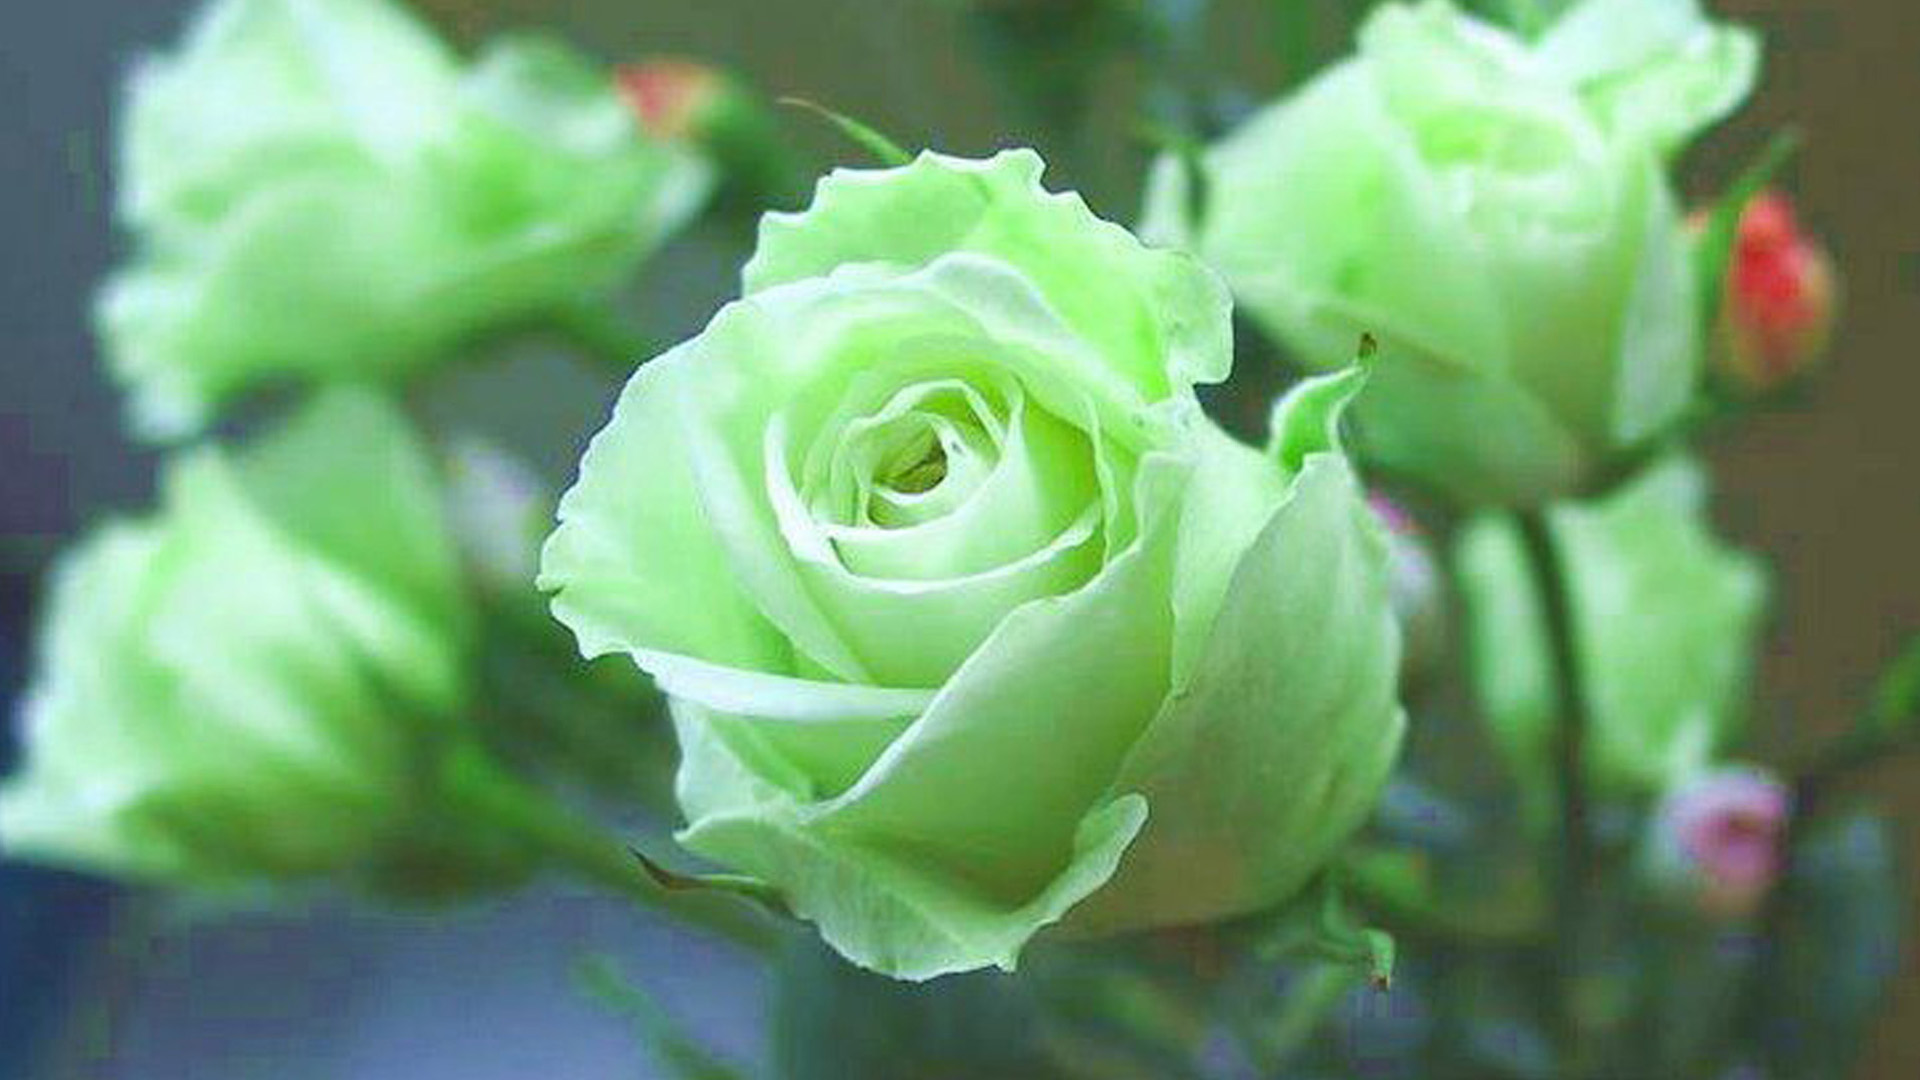 Green Rose Wallpapers, Pictures, Images